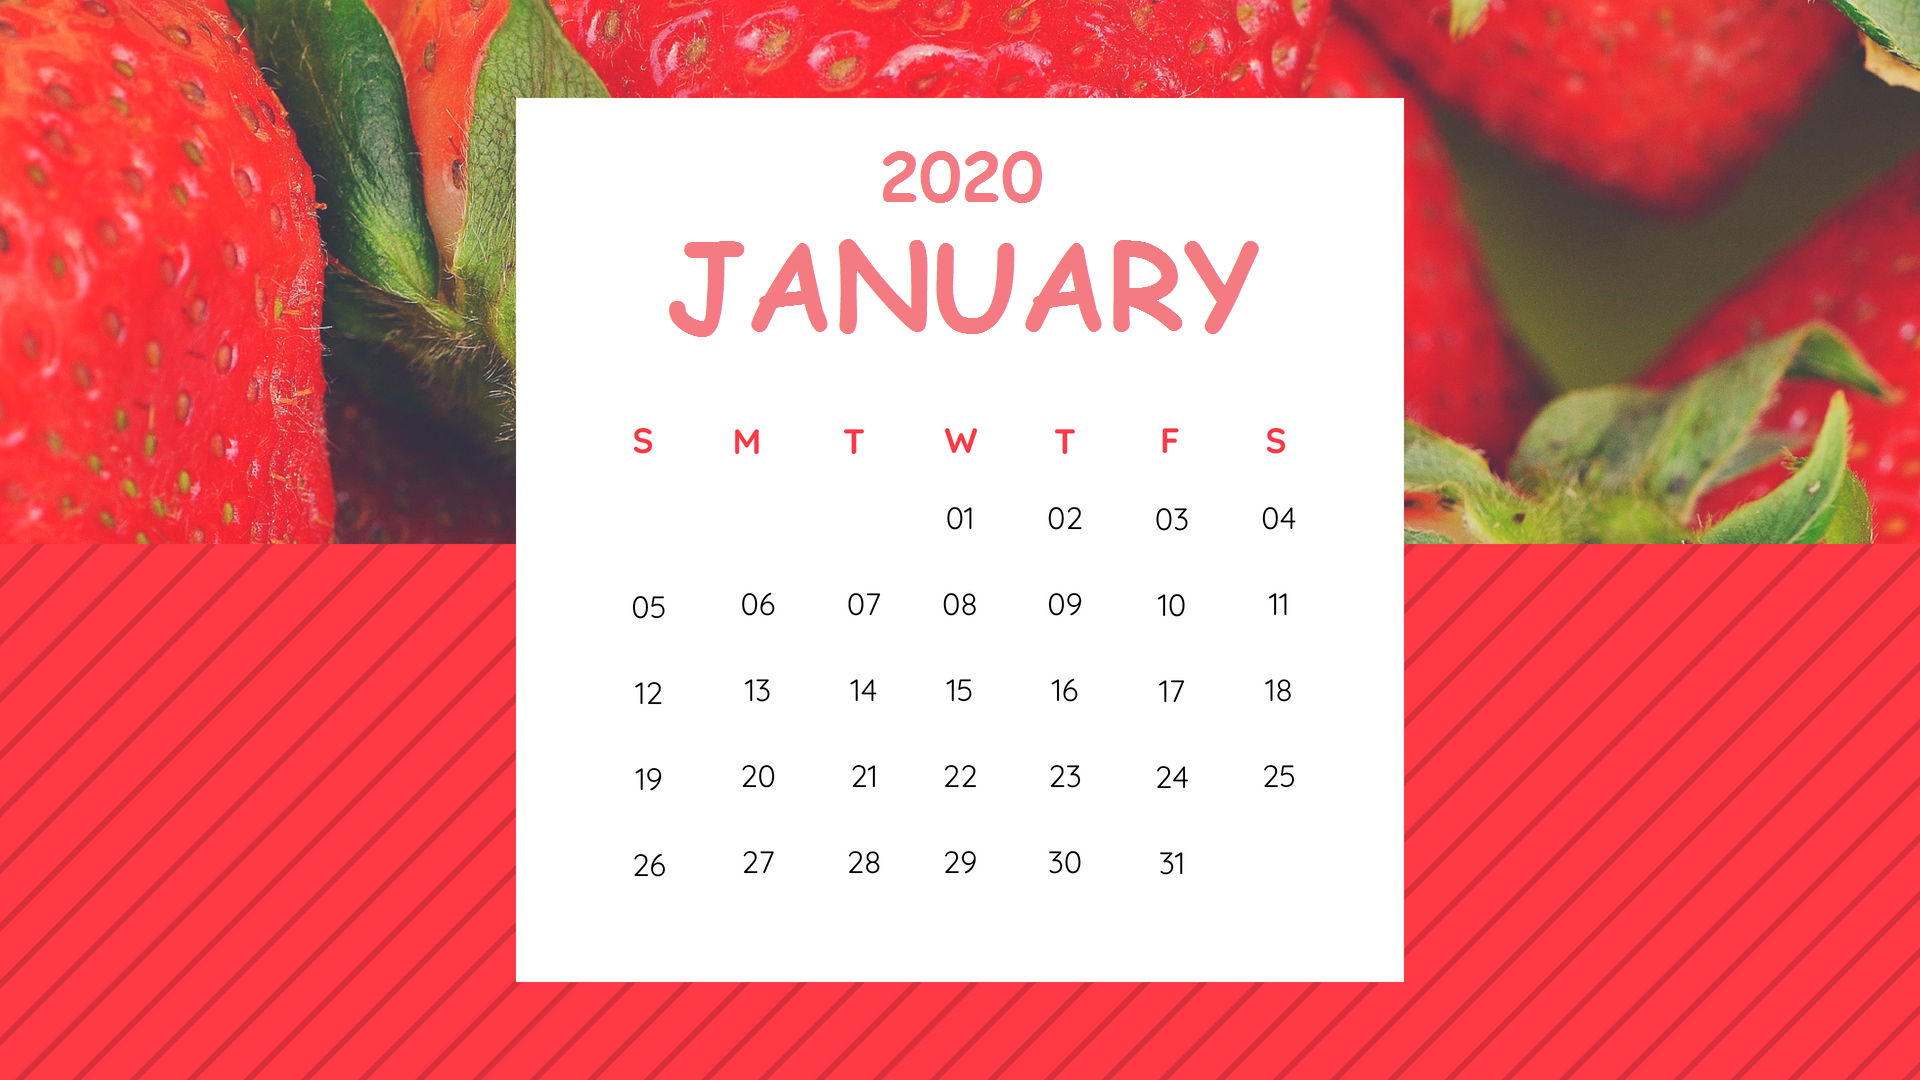 Print January 2020 Desk Calendar Latest Calendar 1920x1080